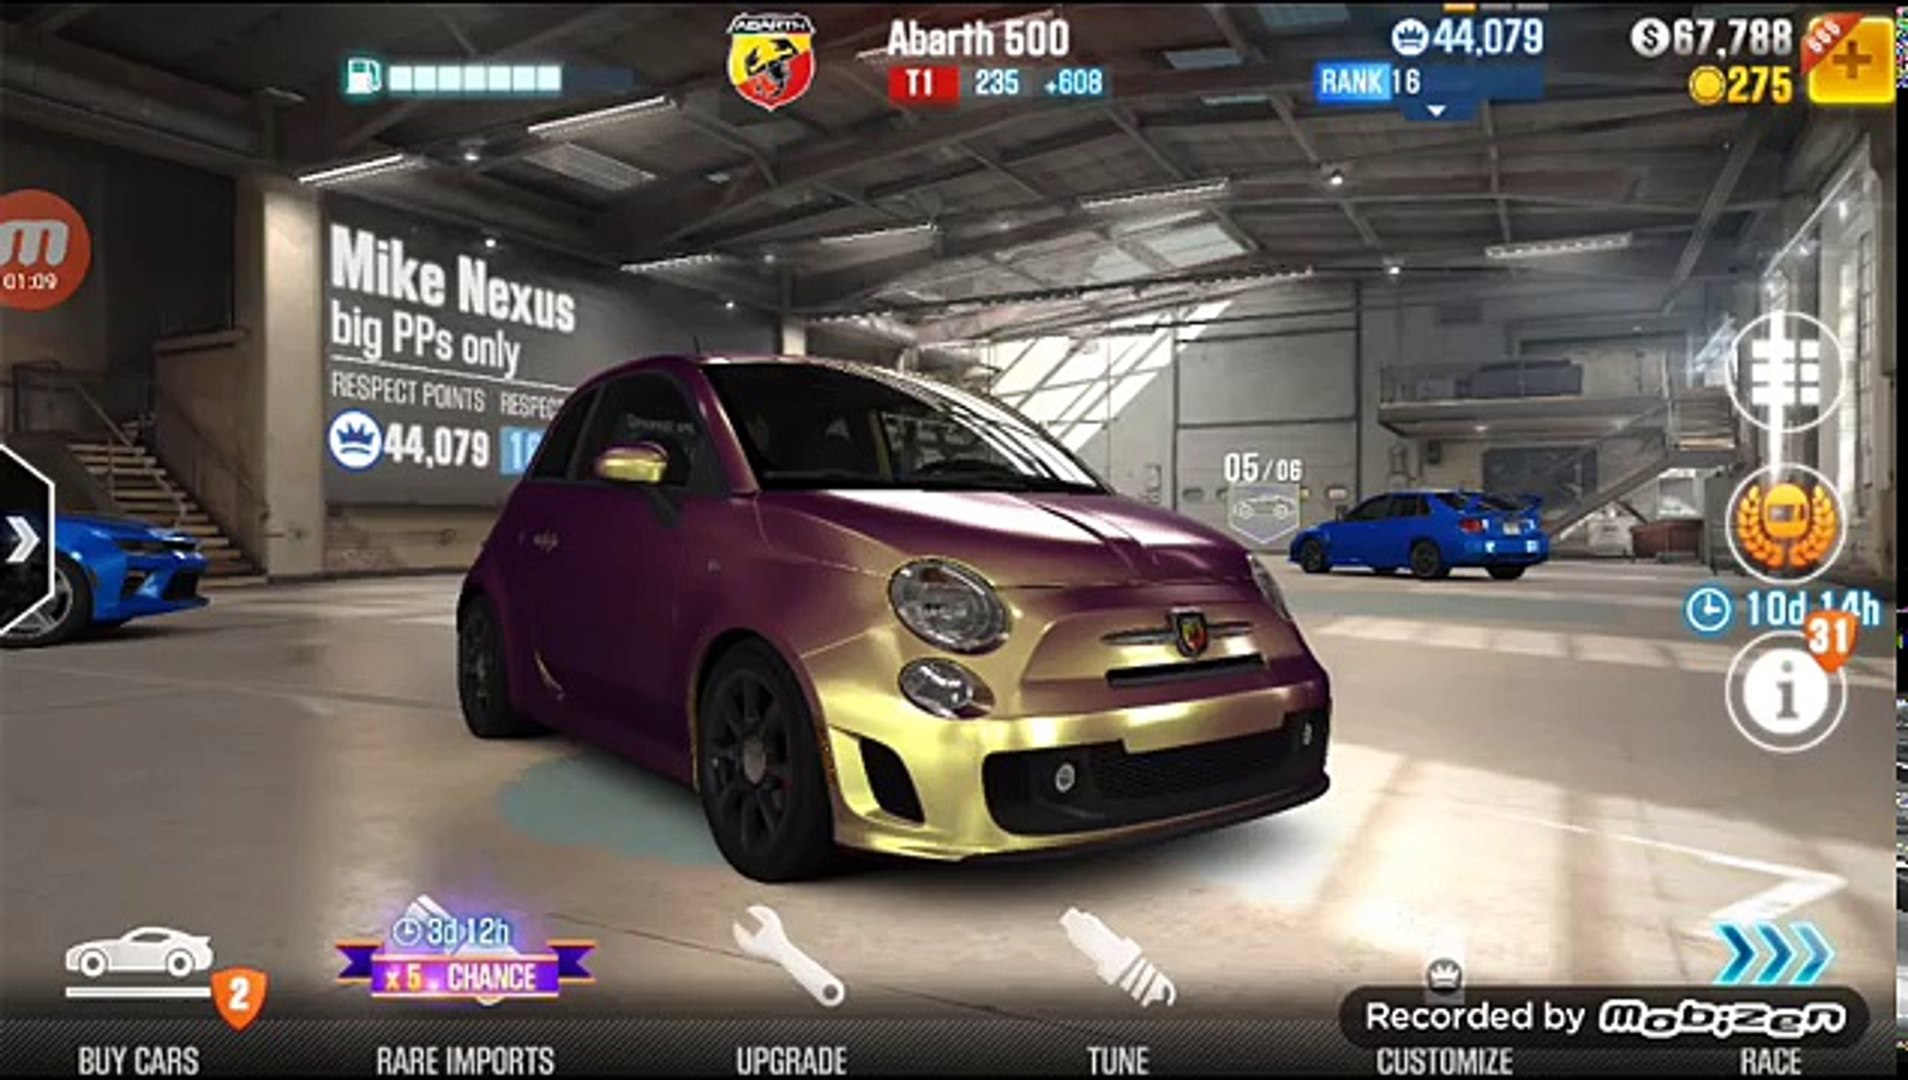 Csr2 Tier 1 Tuning Tips Perfect Launch Tutorial And Shifting The Fiat Abarth 500 Best Car